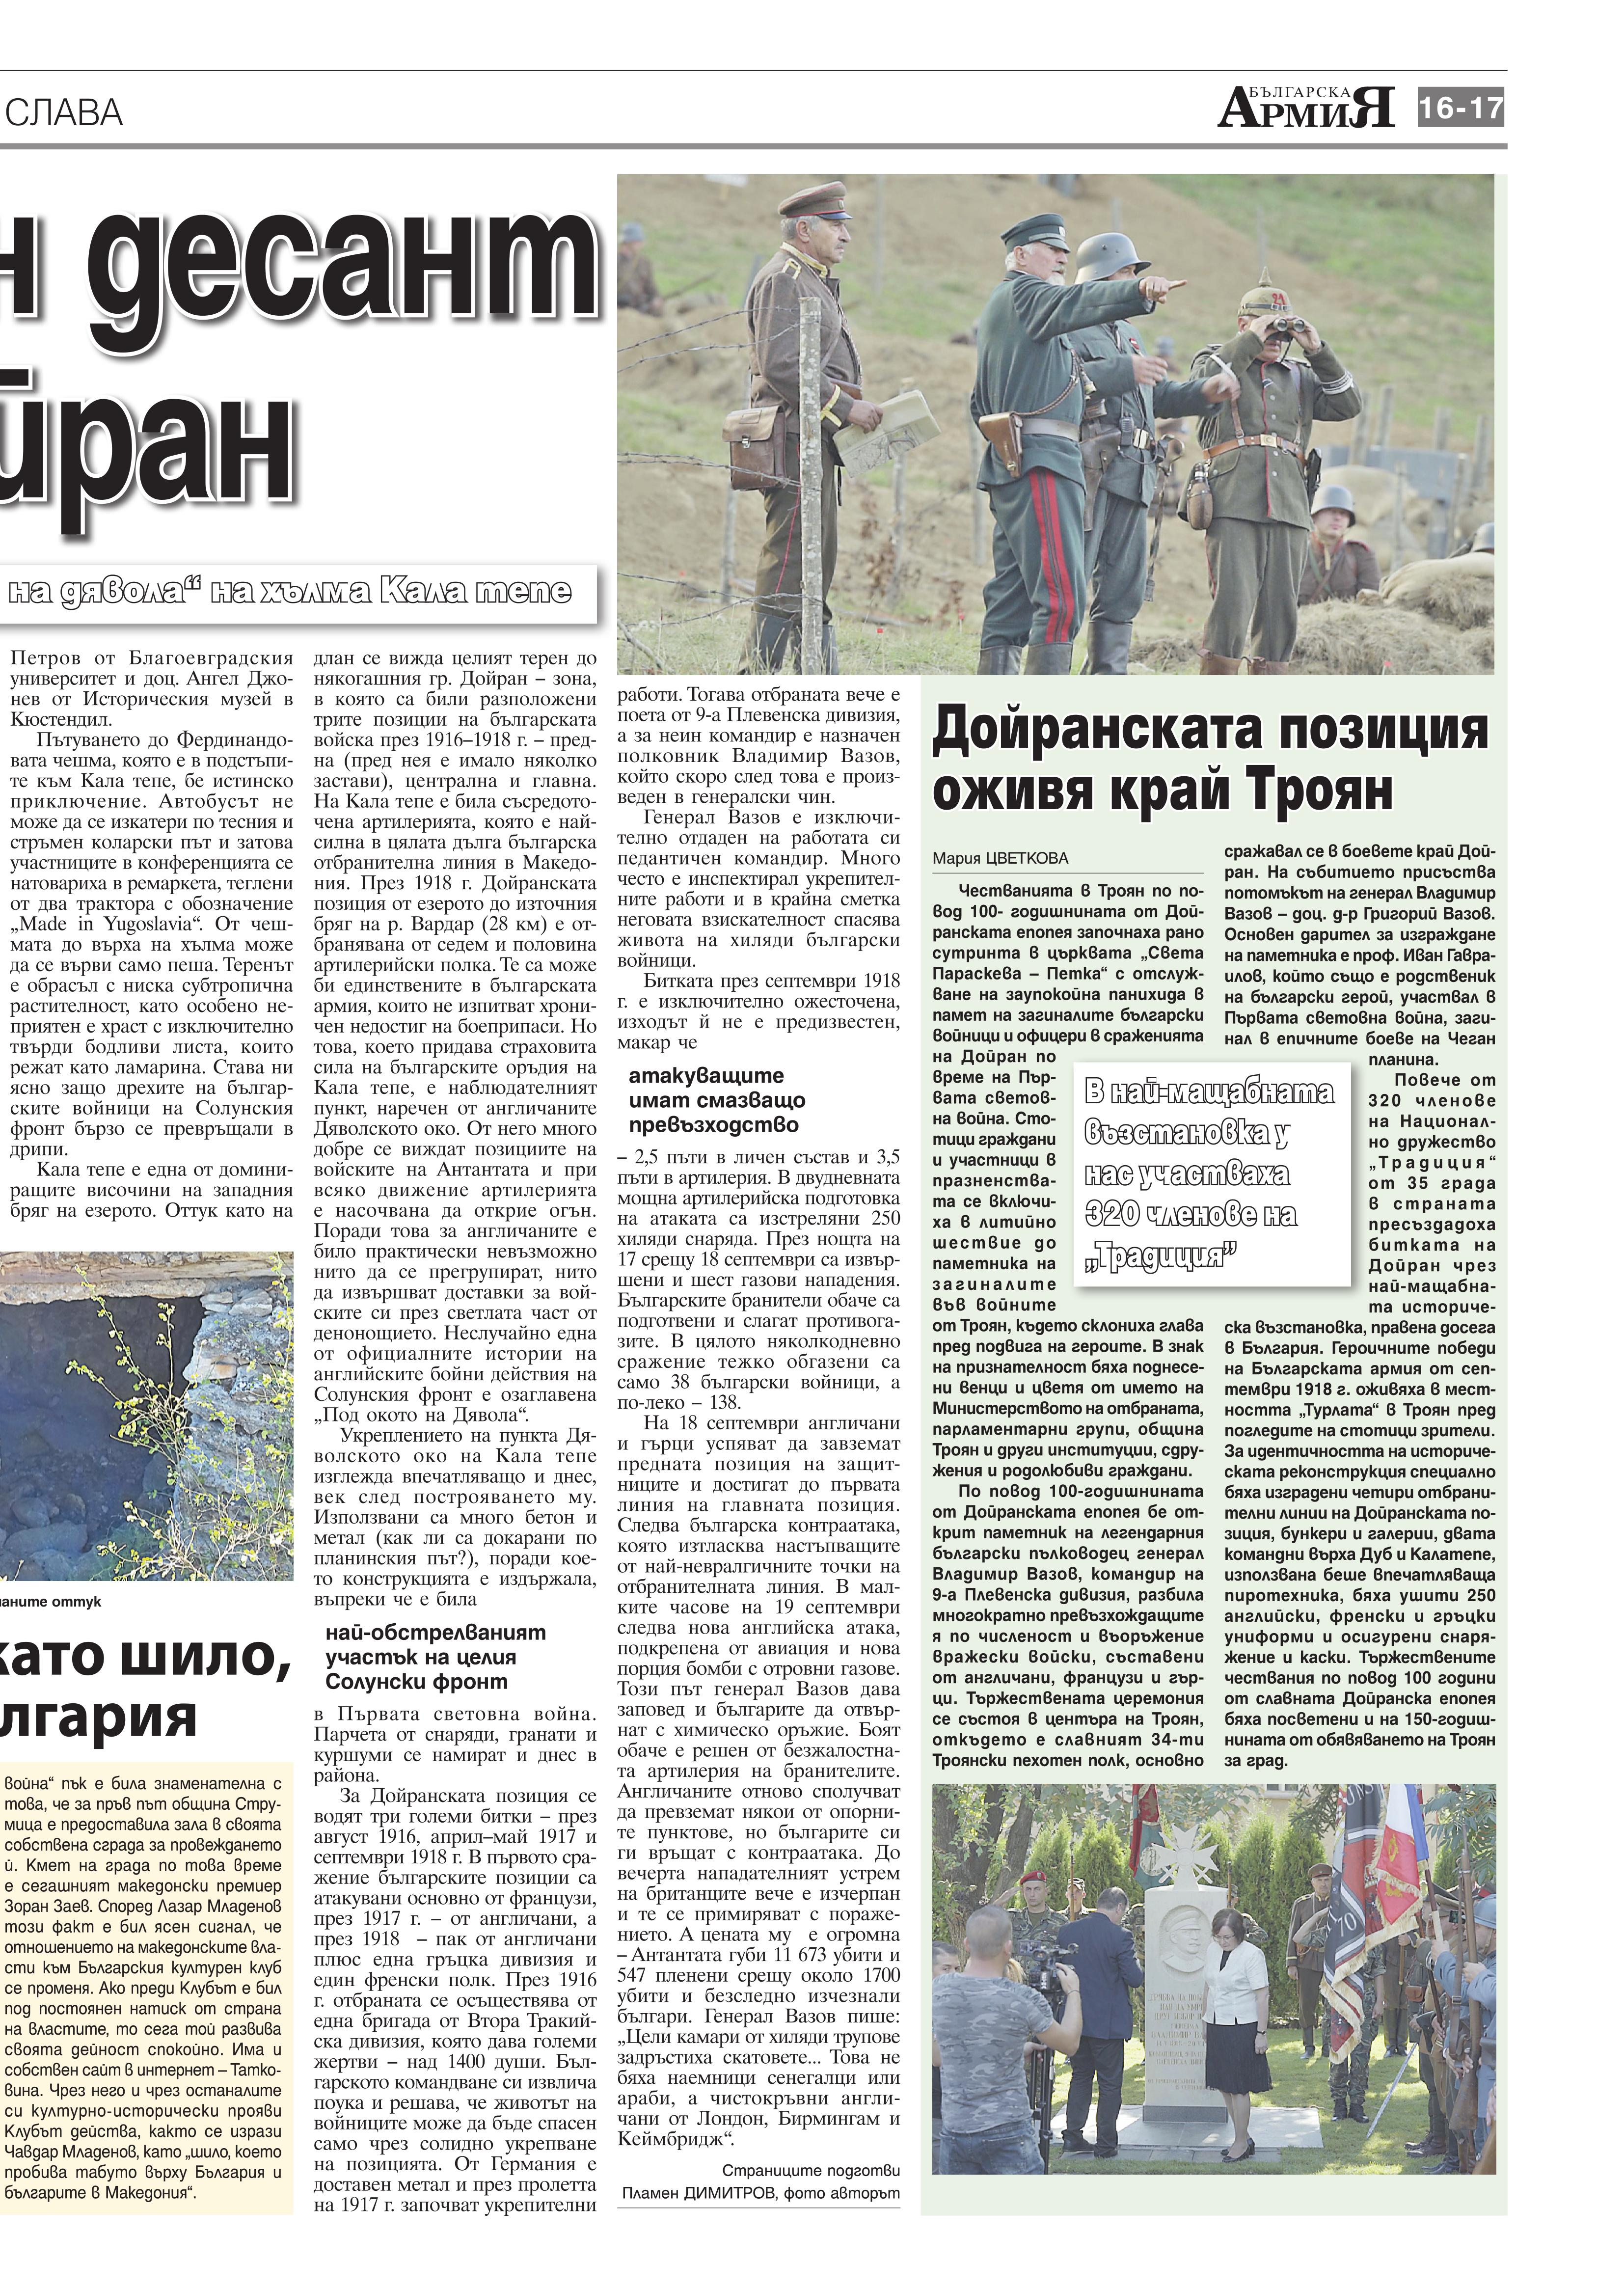 https://armymedia.bg/wp-content/uploads/2015/06/17.page1_-66.jpg